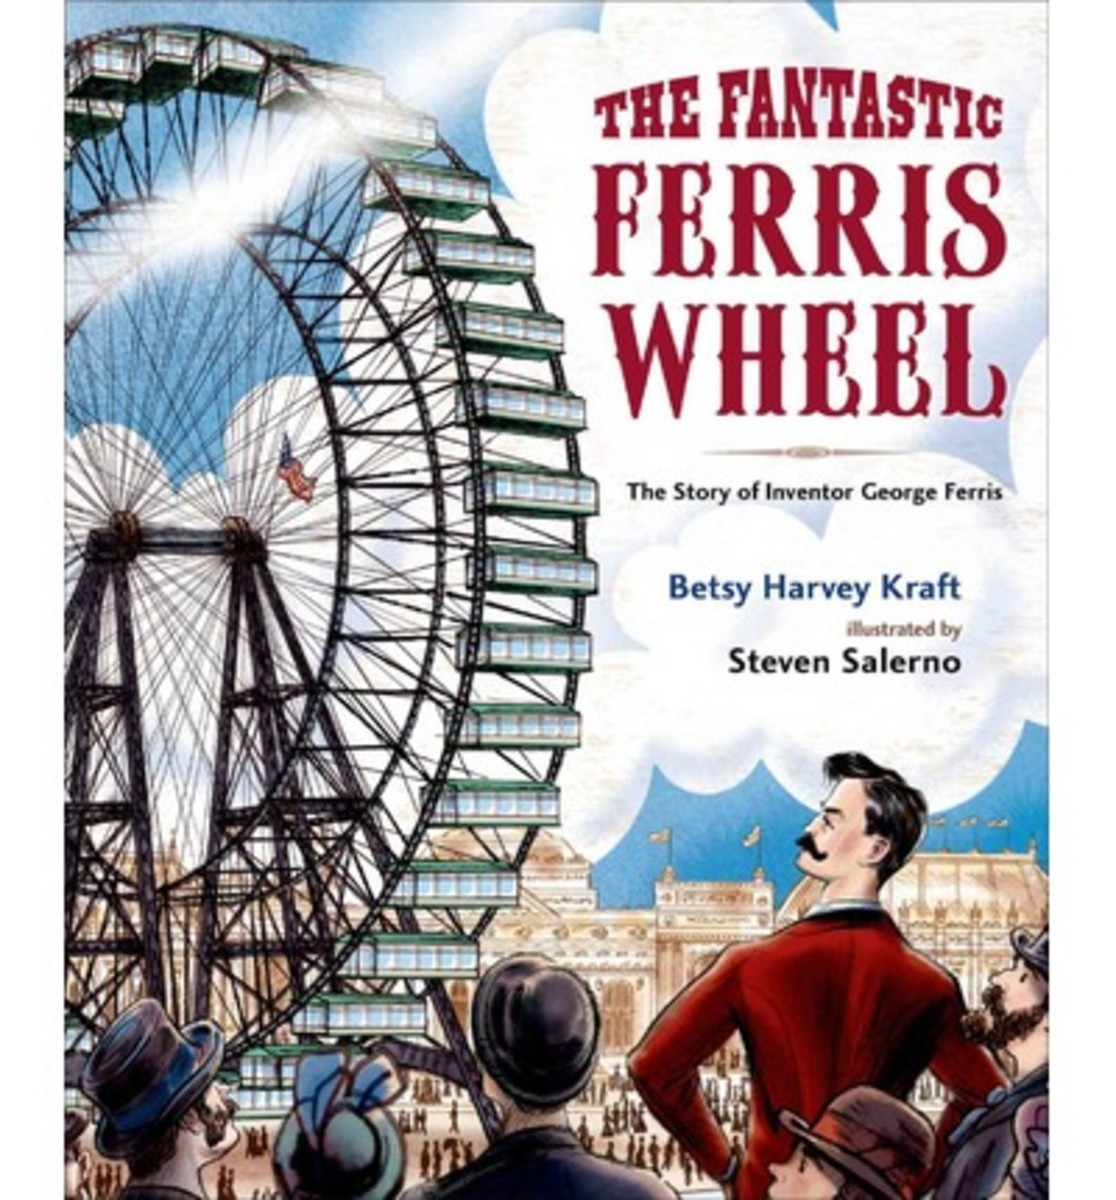 The Fantastic Ferris Wheel: The Story of Inventor George Ferris by Betsy Harvey Kraft